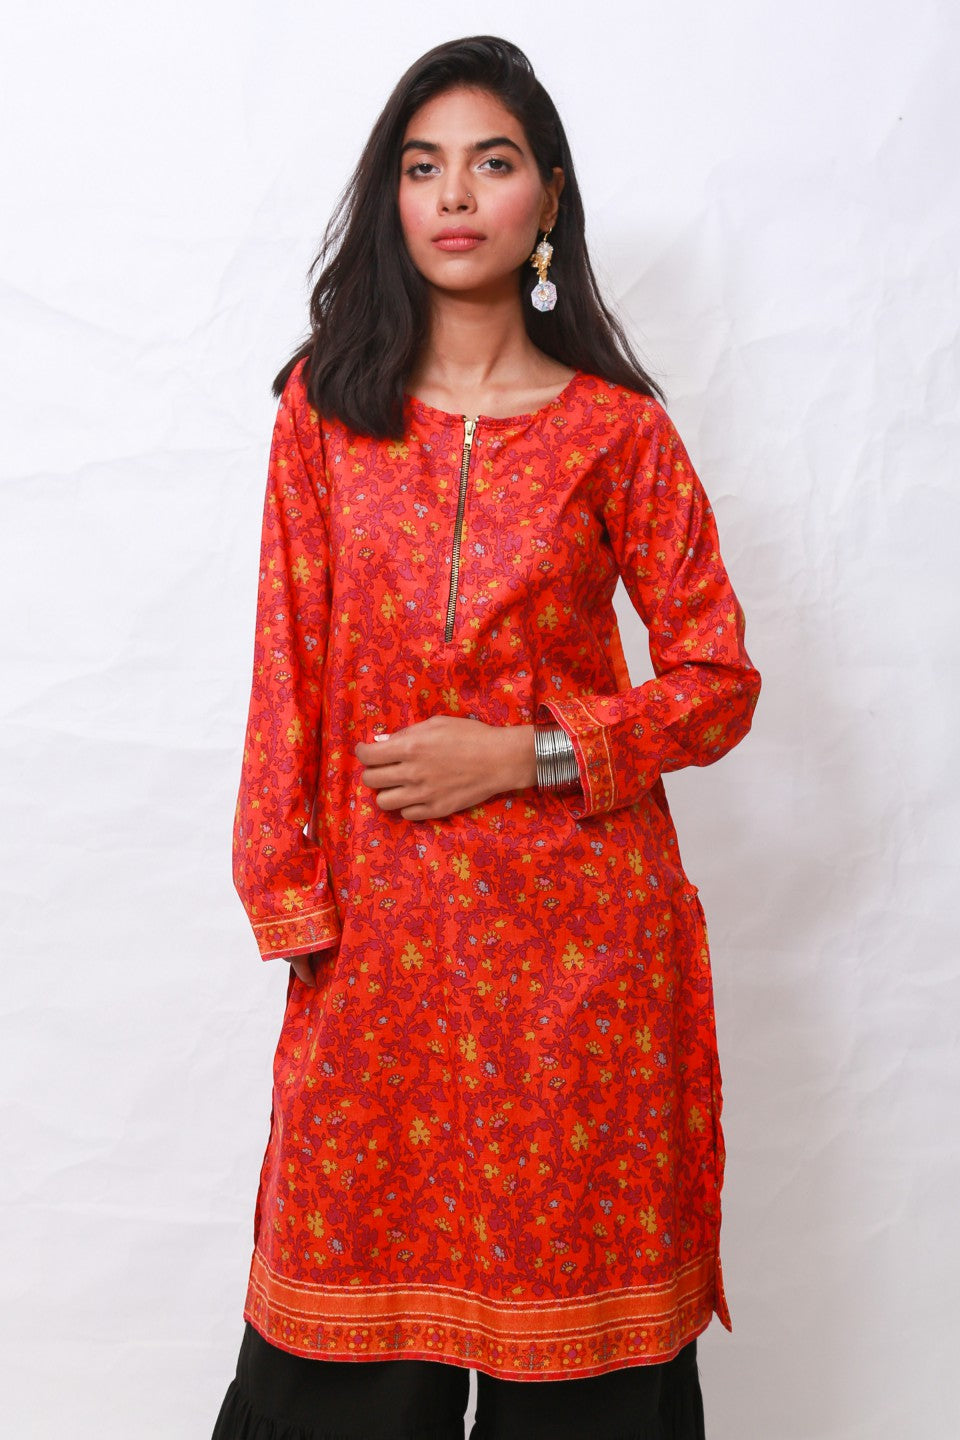 Generation - Orange Suzani Shirt